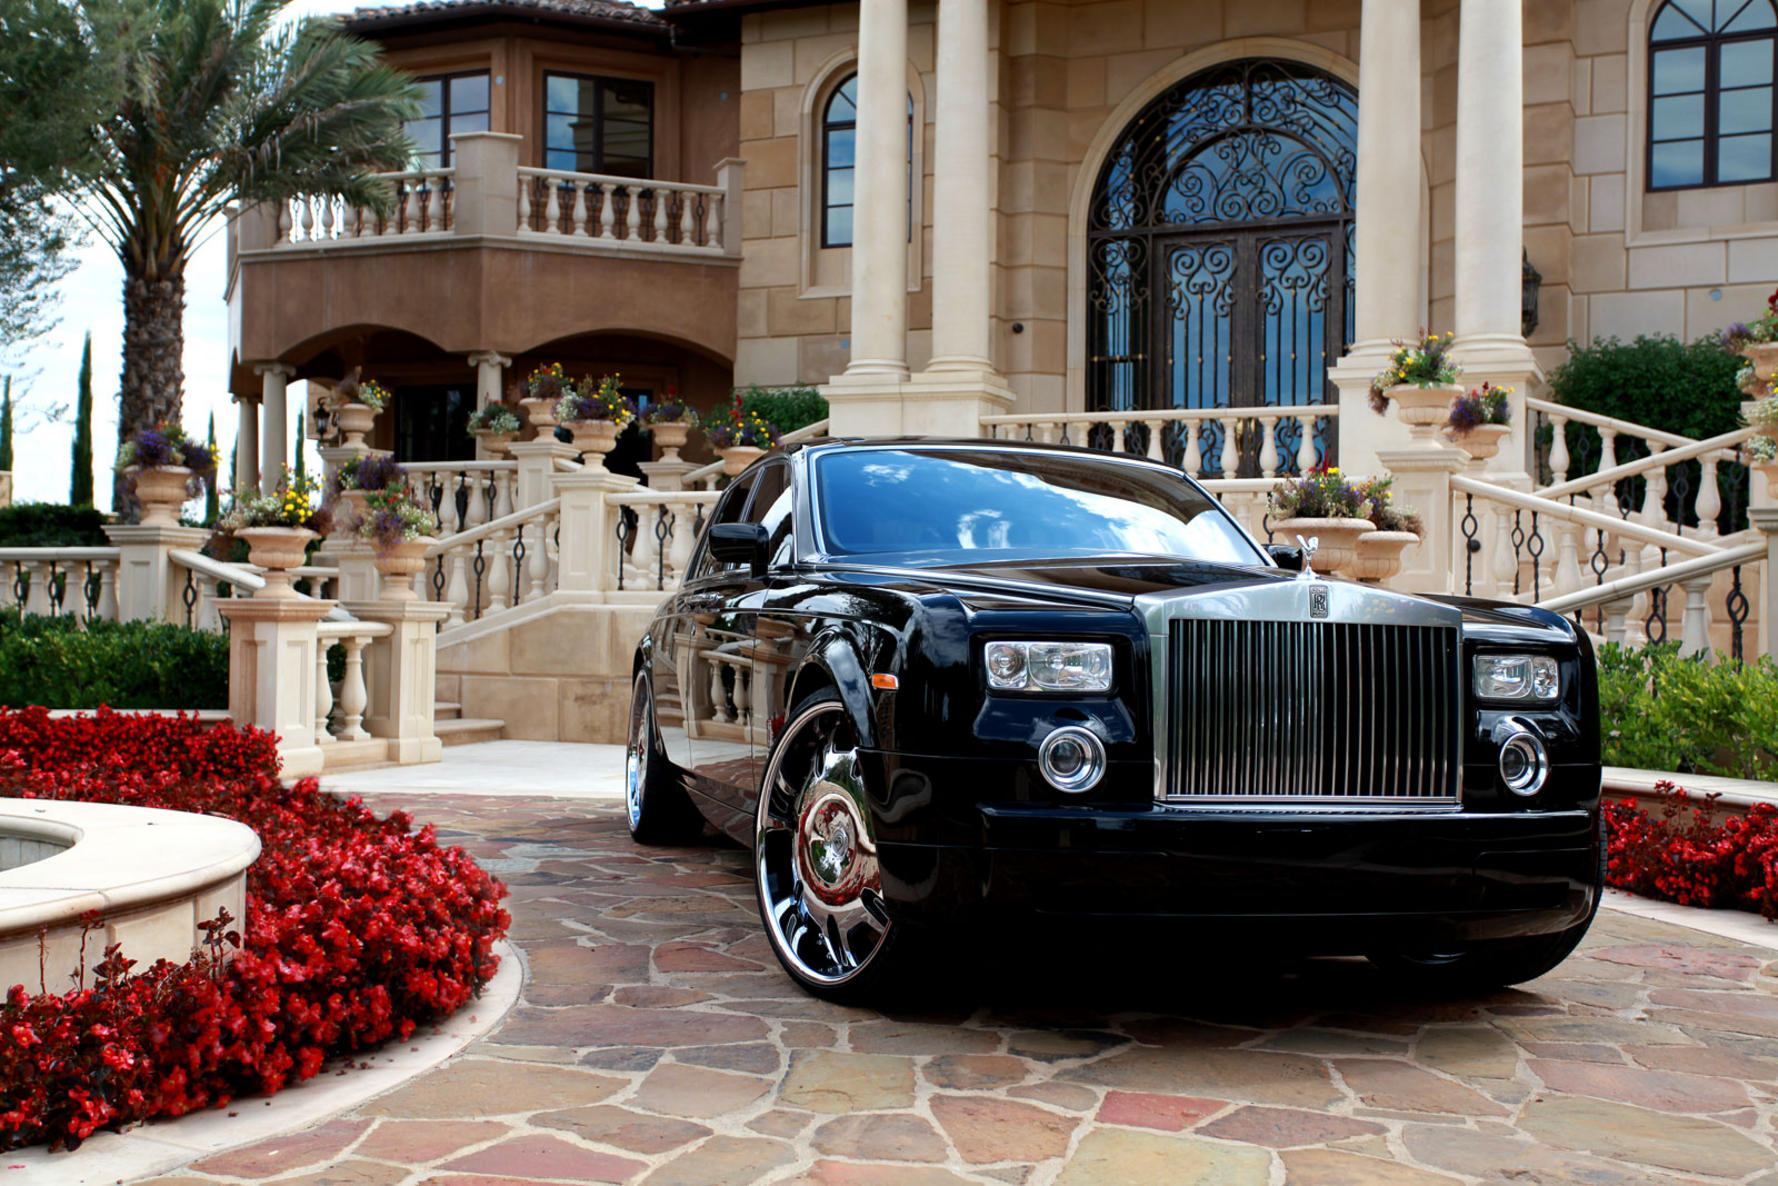 2006 Rolls Royce Phantom 247 V1 By MegaBounce